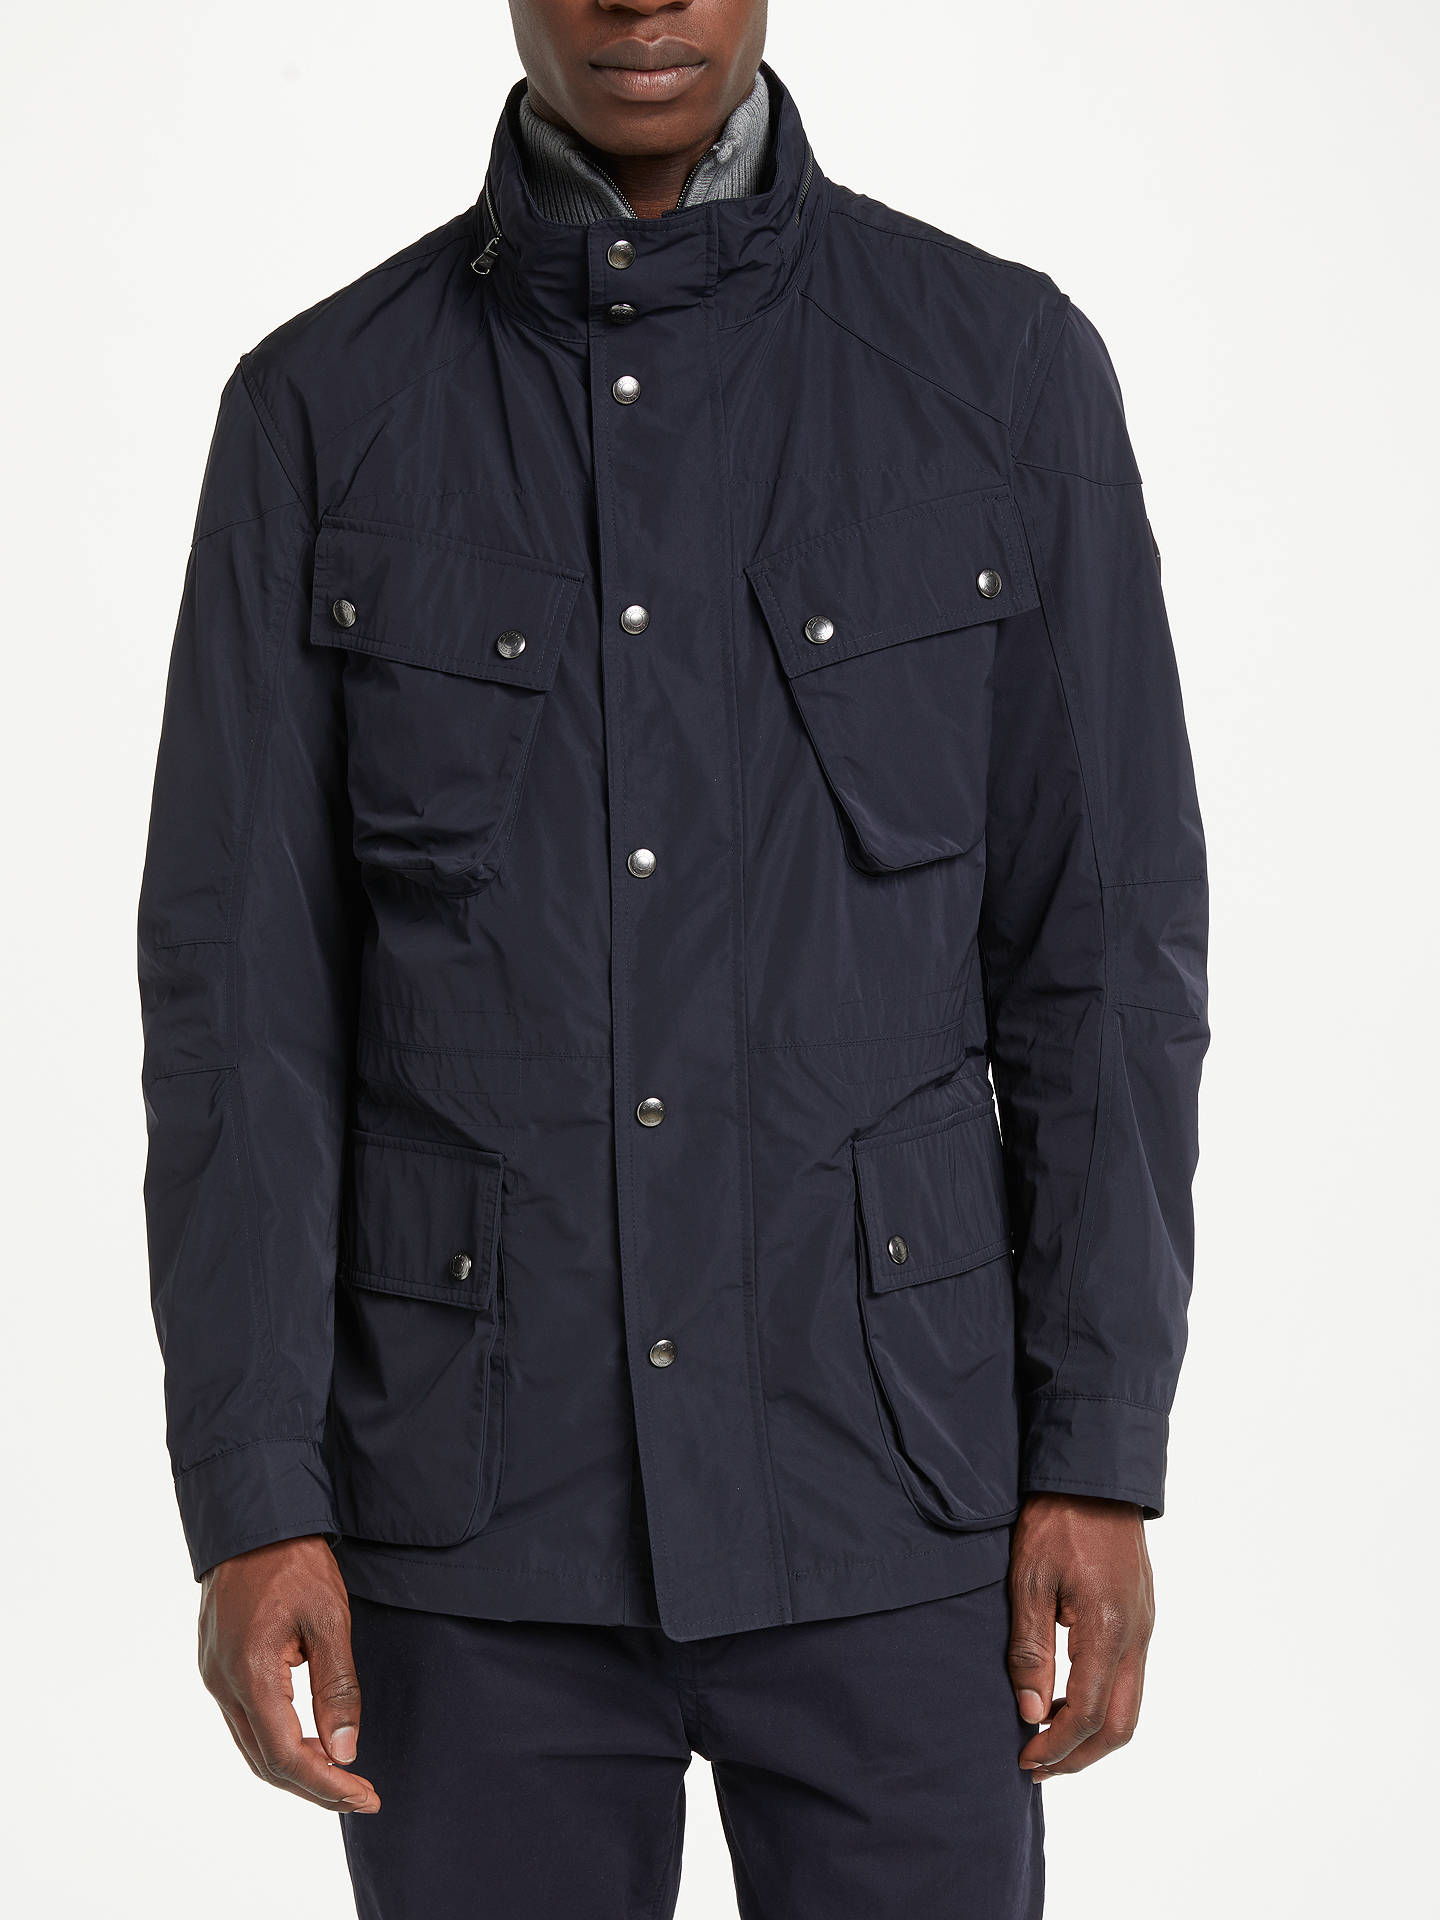 various colors 3acb9 d489b Buy Hackett London Velospeed Four Pocket Jacket, Navy, S Online at  johnlewis.com ...